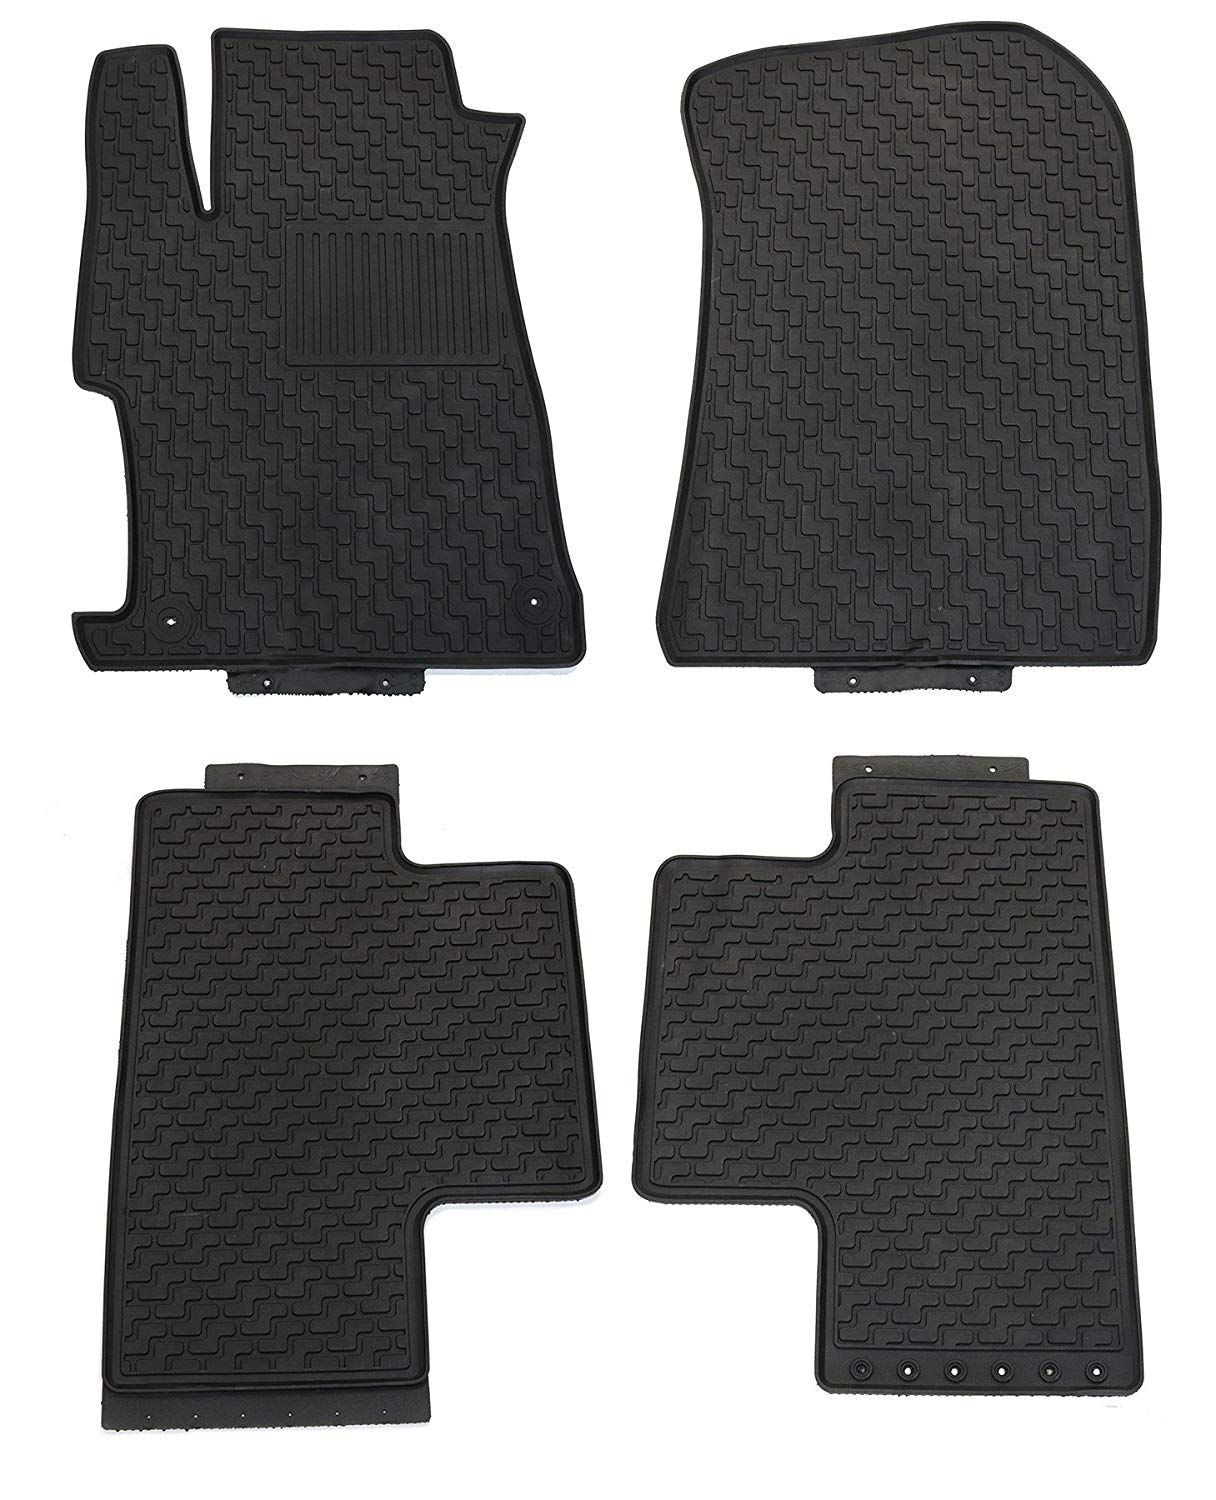 Tmb Motorsports All Weather Floor Mats For Honda Civic Sedan 2012 2015 Want Additional Info Click On The Image With Images Honda Civic Sedan Civic Sedan Honda Civic